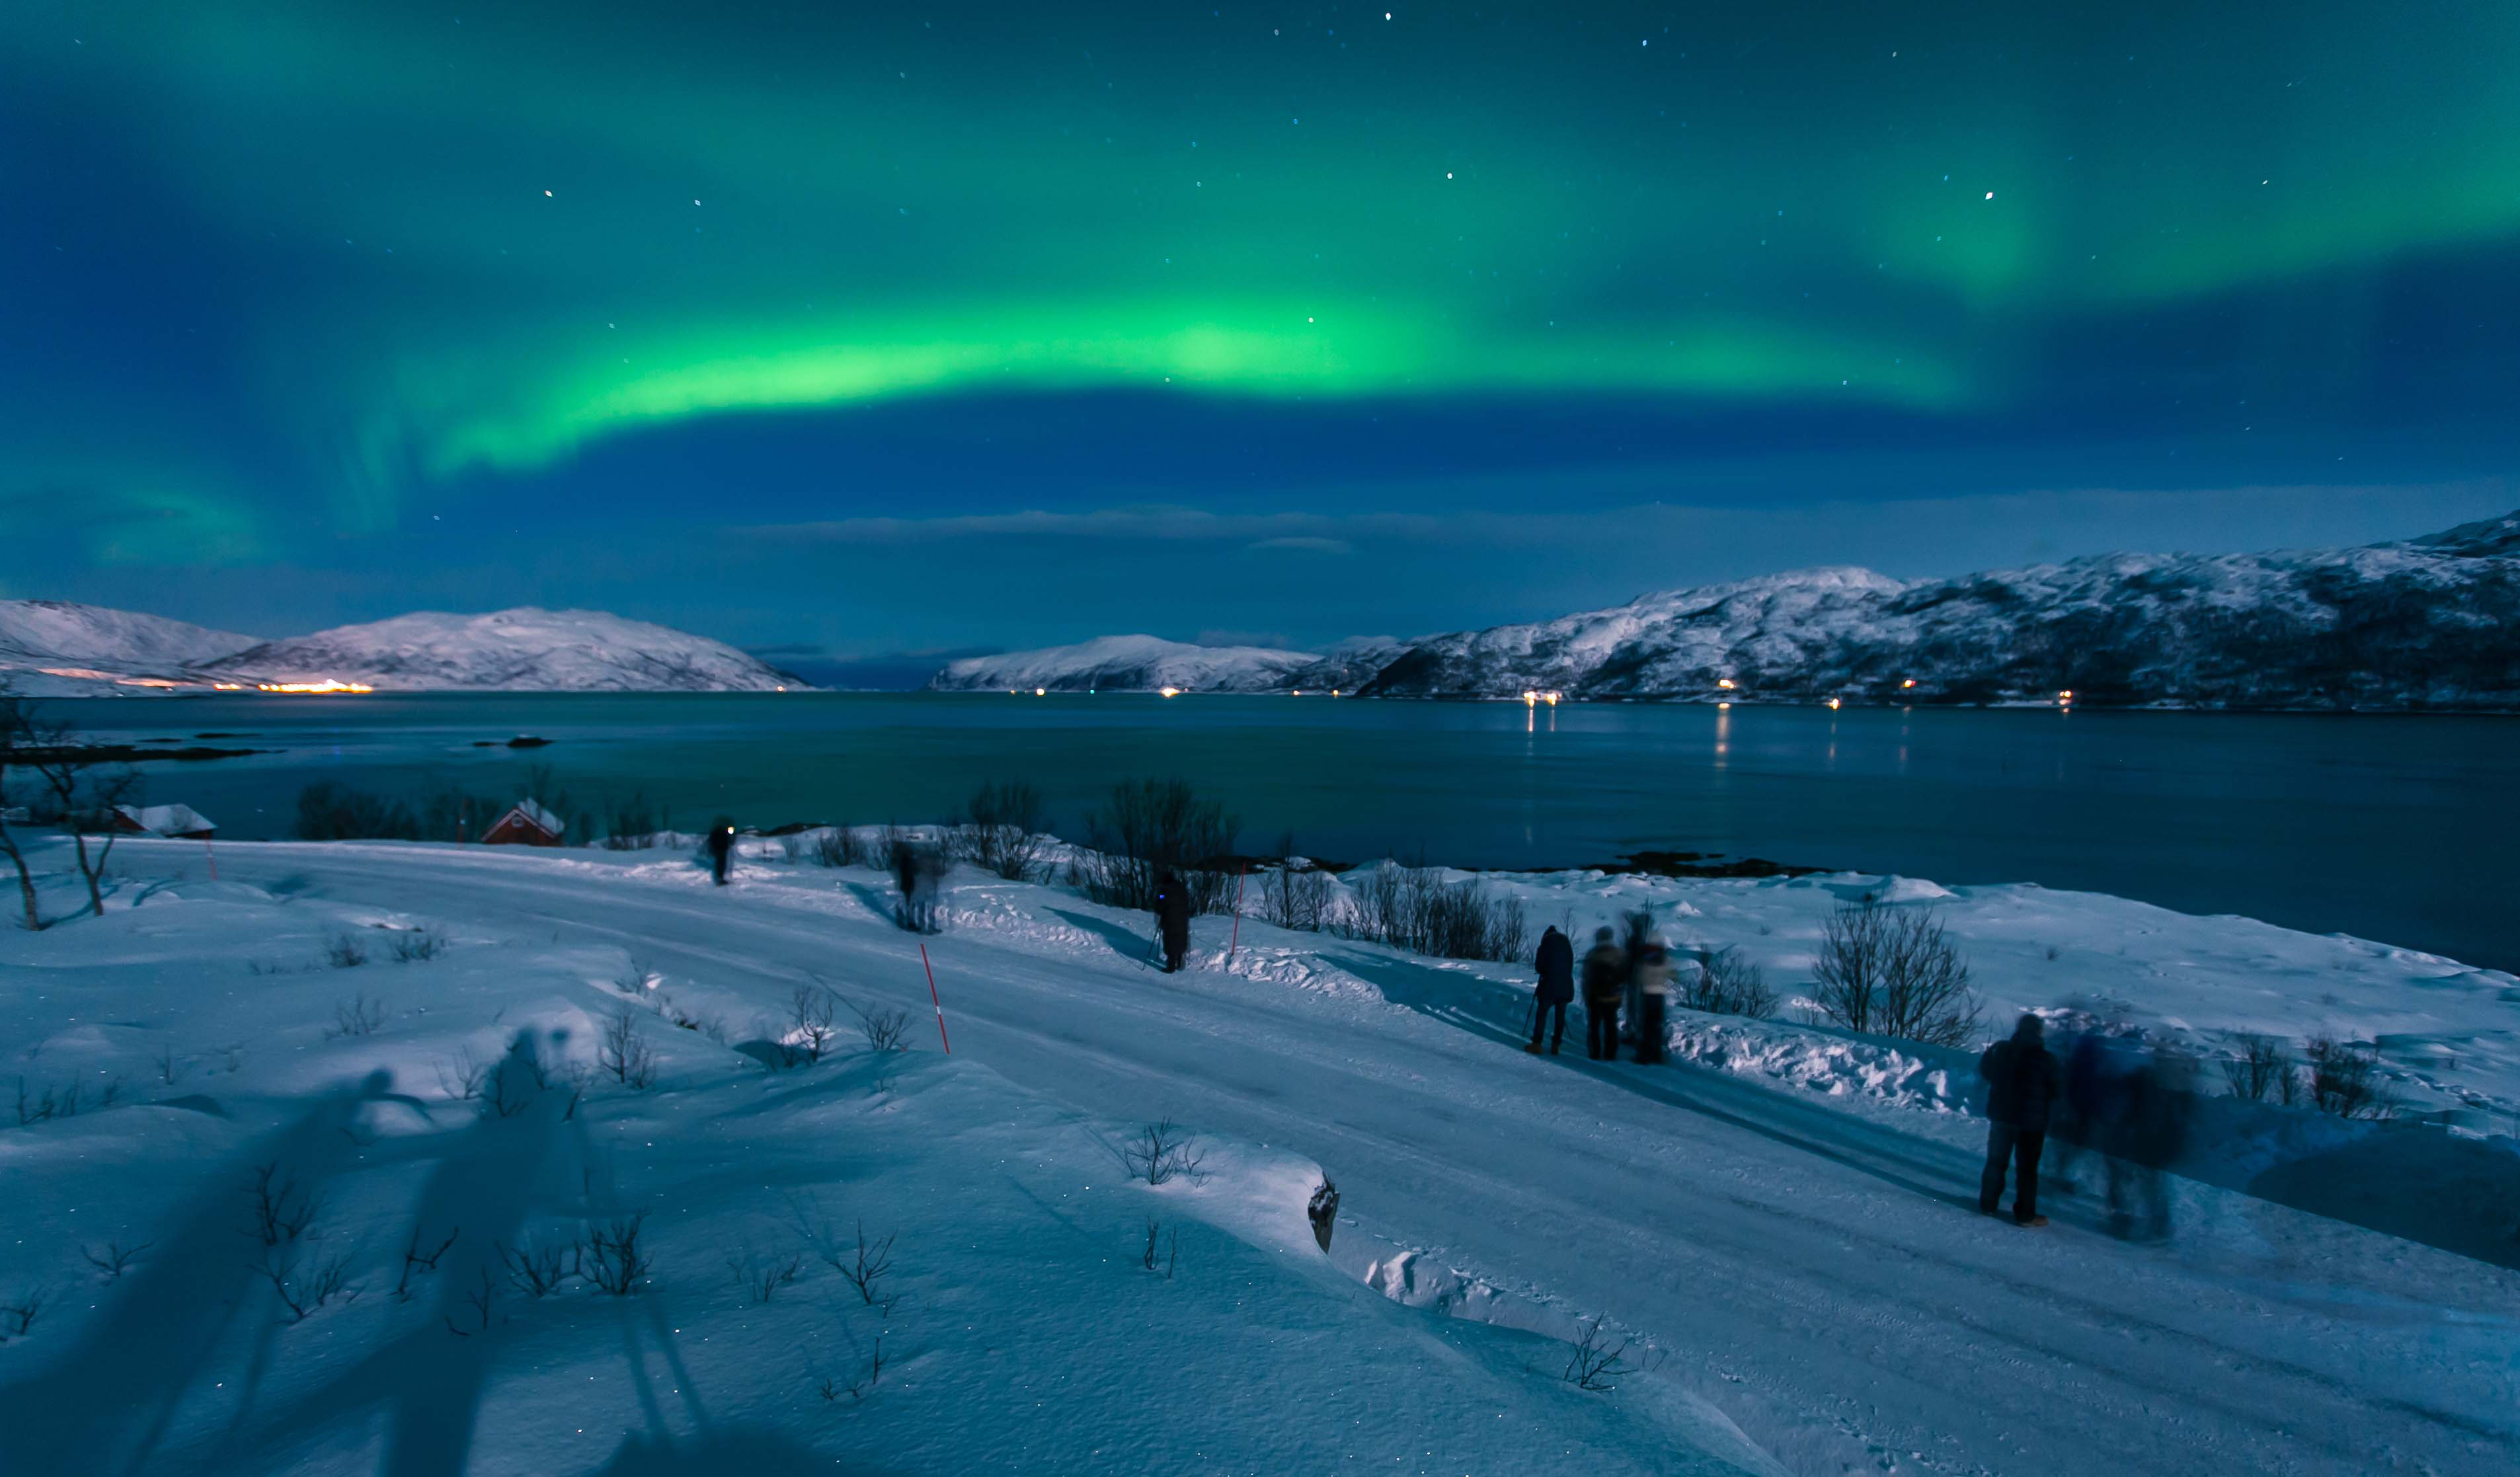 A group of people enjoying the magnificent northern lights from Laksvatn, Troms.